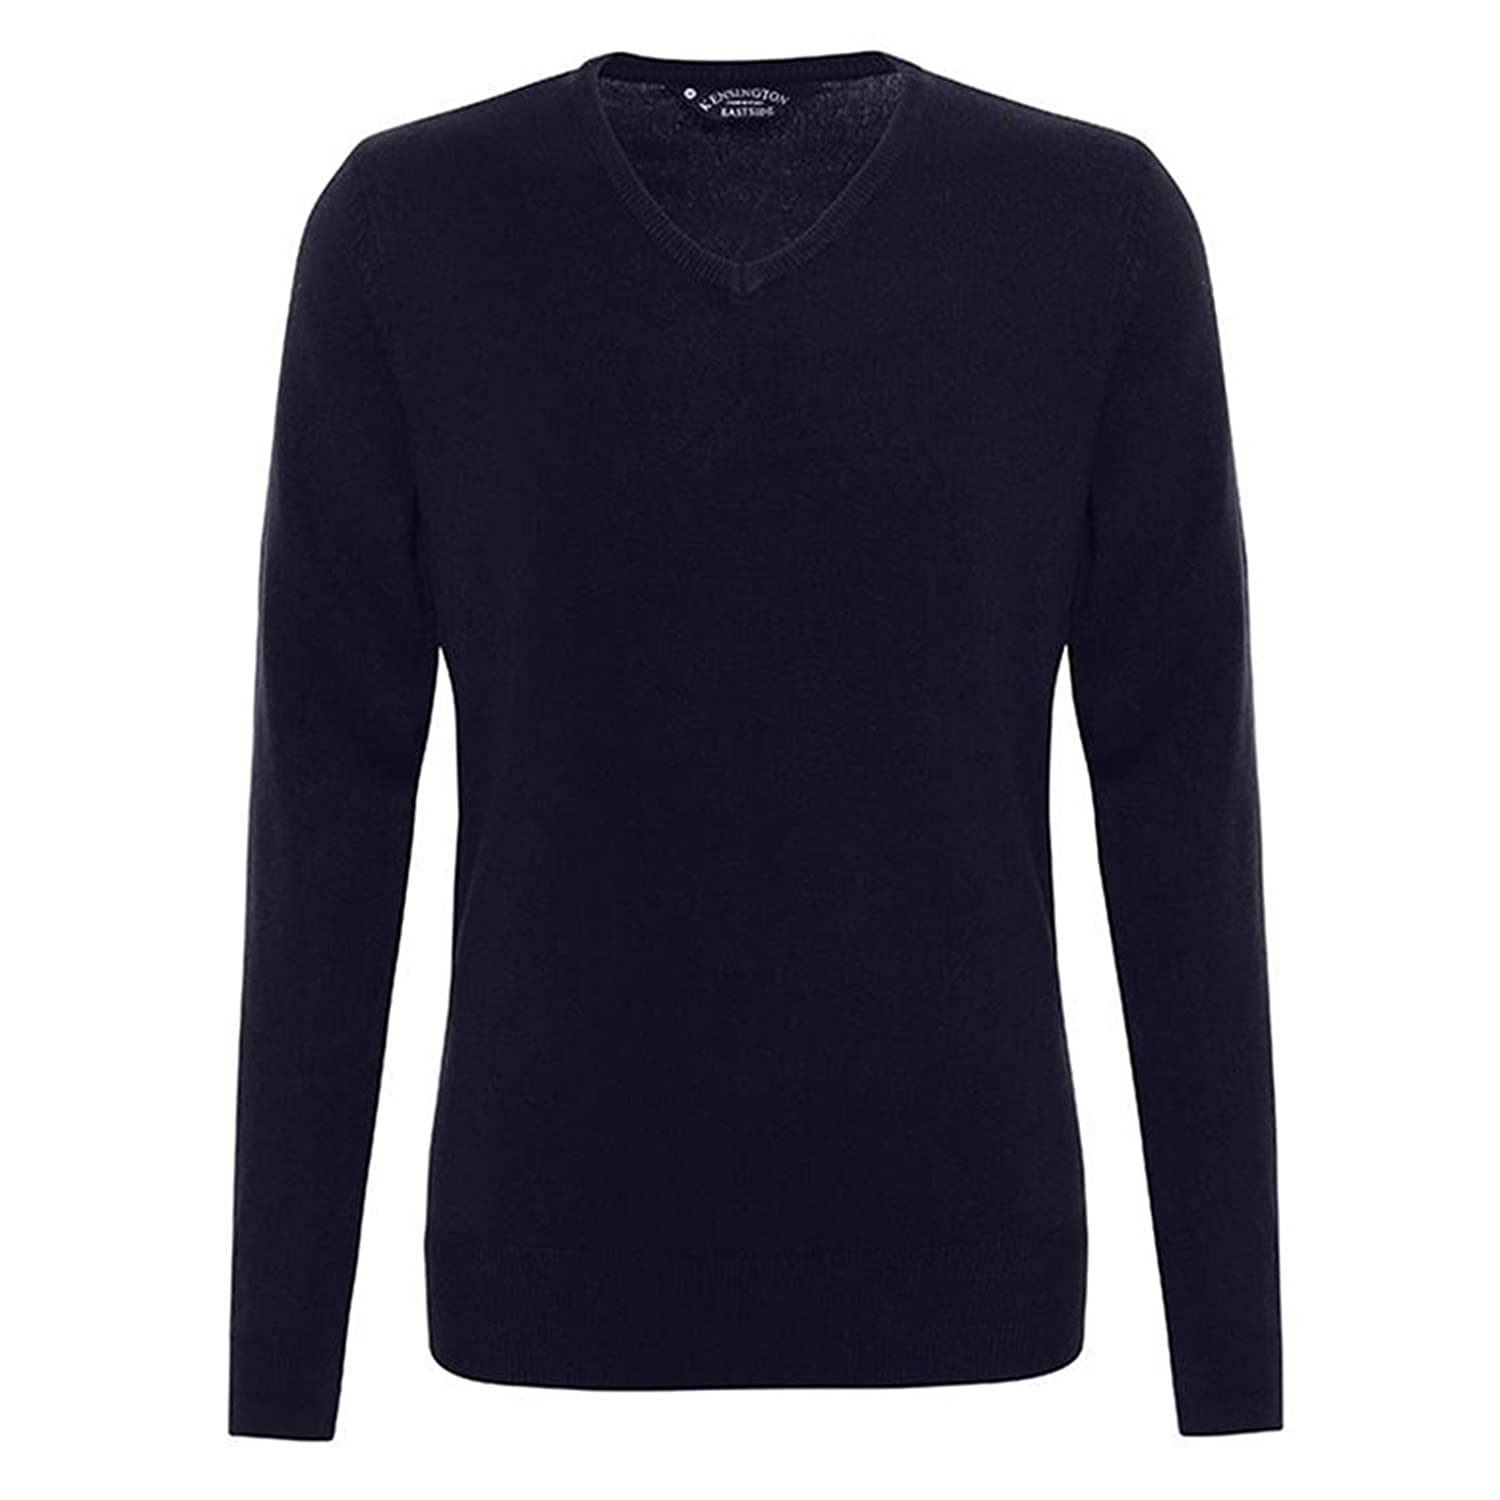 Mens V-neck Jumper Renold Acrylic Cashmilon Sweater knitted by Affordable Fashion